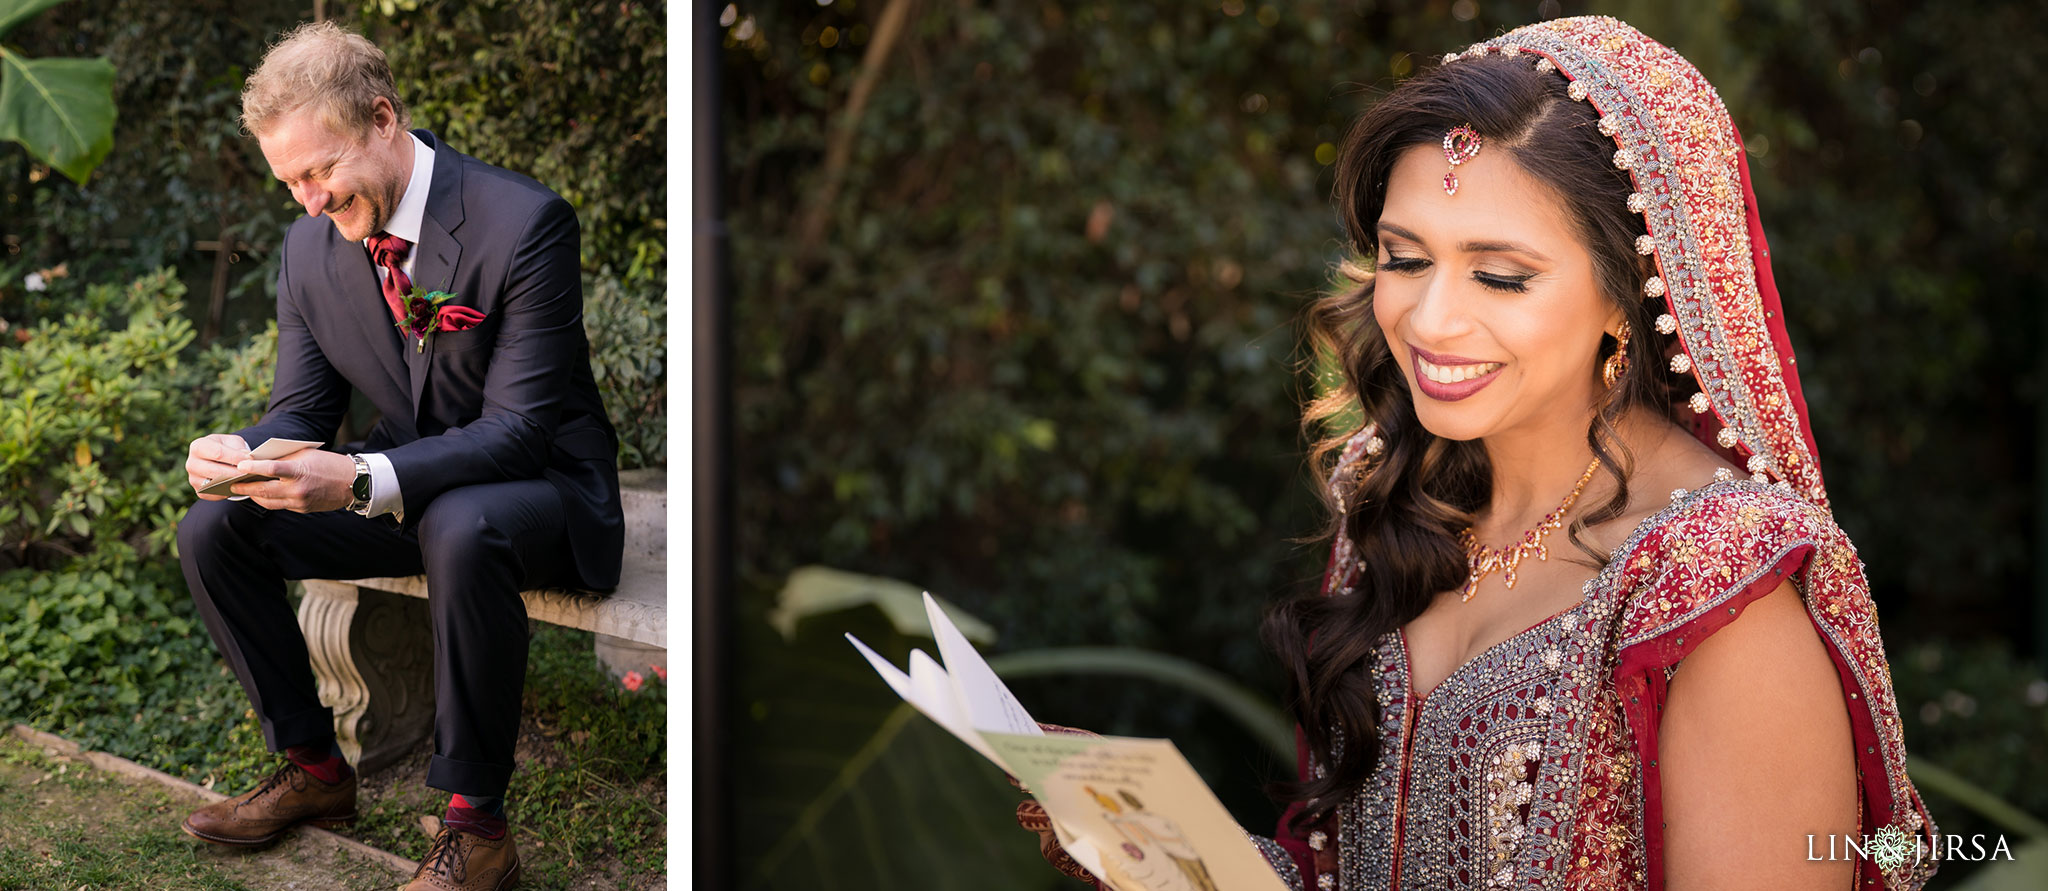 13 altadena town country club pakistani first look wedding photography